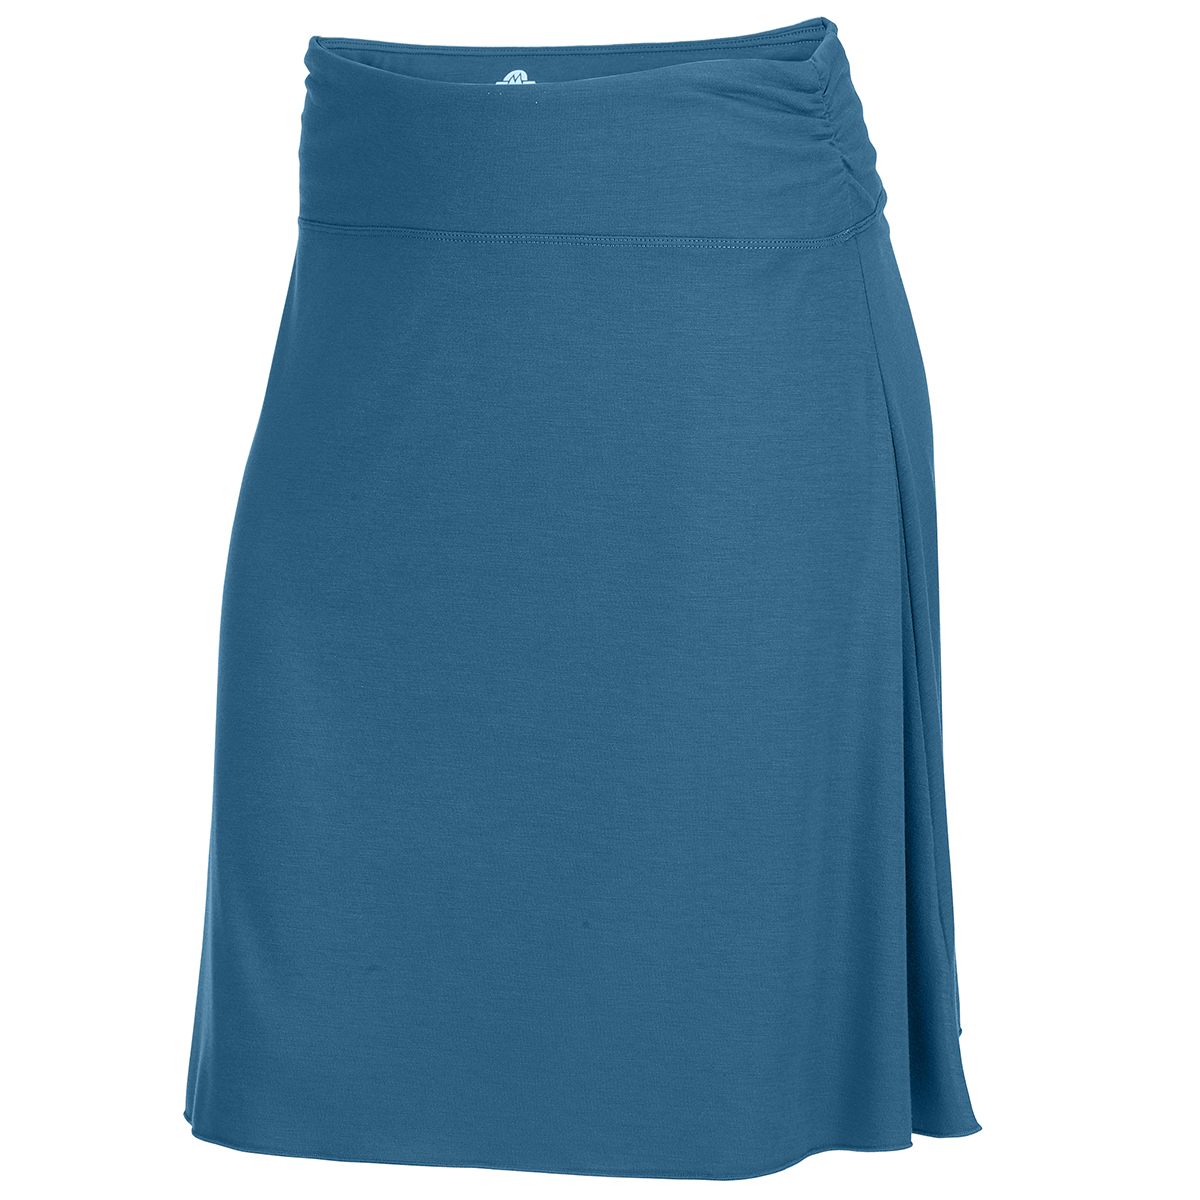 Ems Women's Highland Skirt - Green, XS